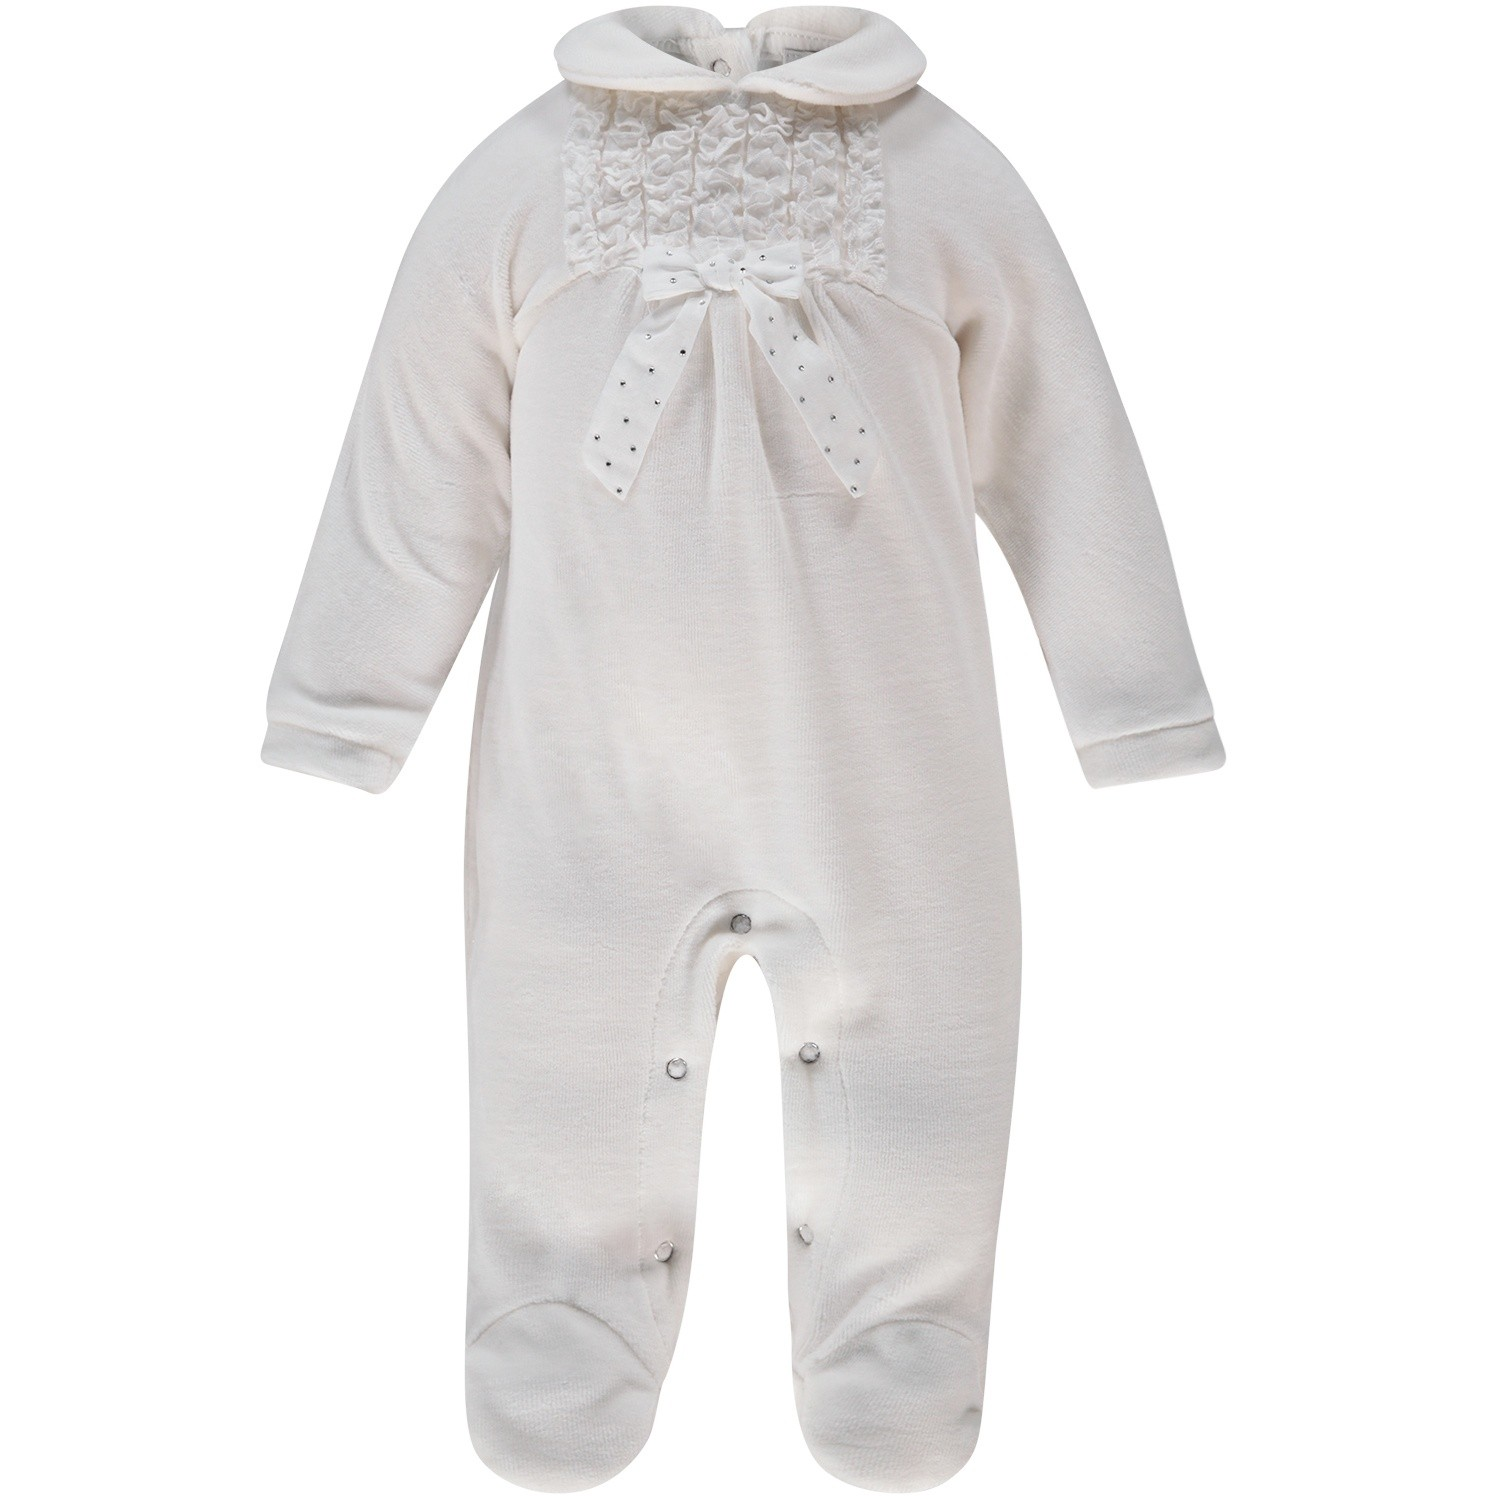 Picture of MonnaLisa 732202 baby playsuit off white